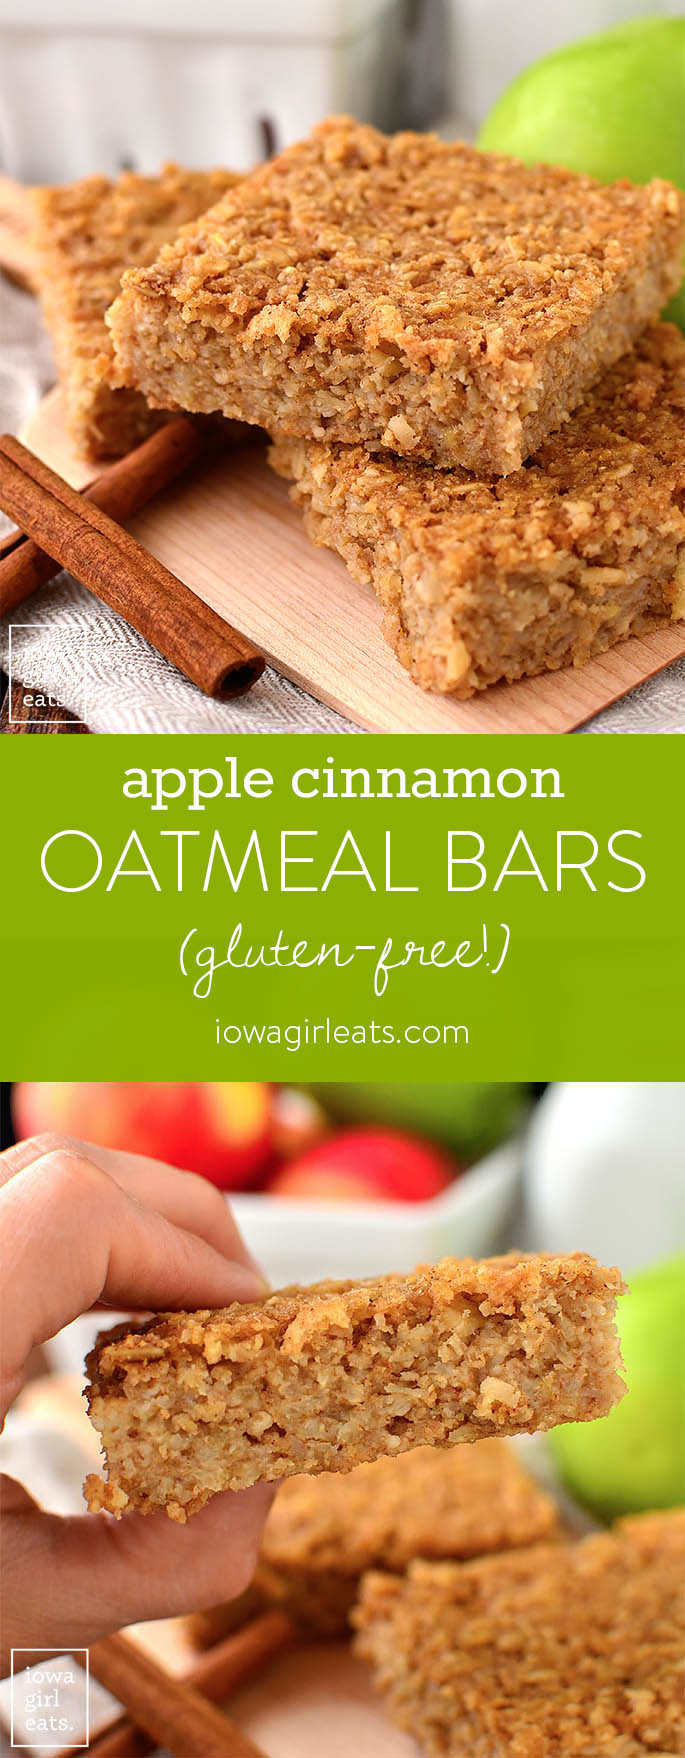 Photo collage of gluten free apple cinnamon oatmeal bars